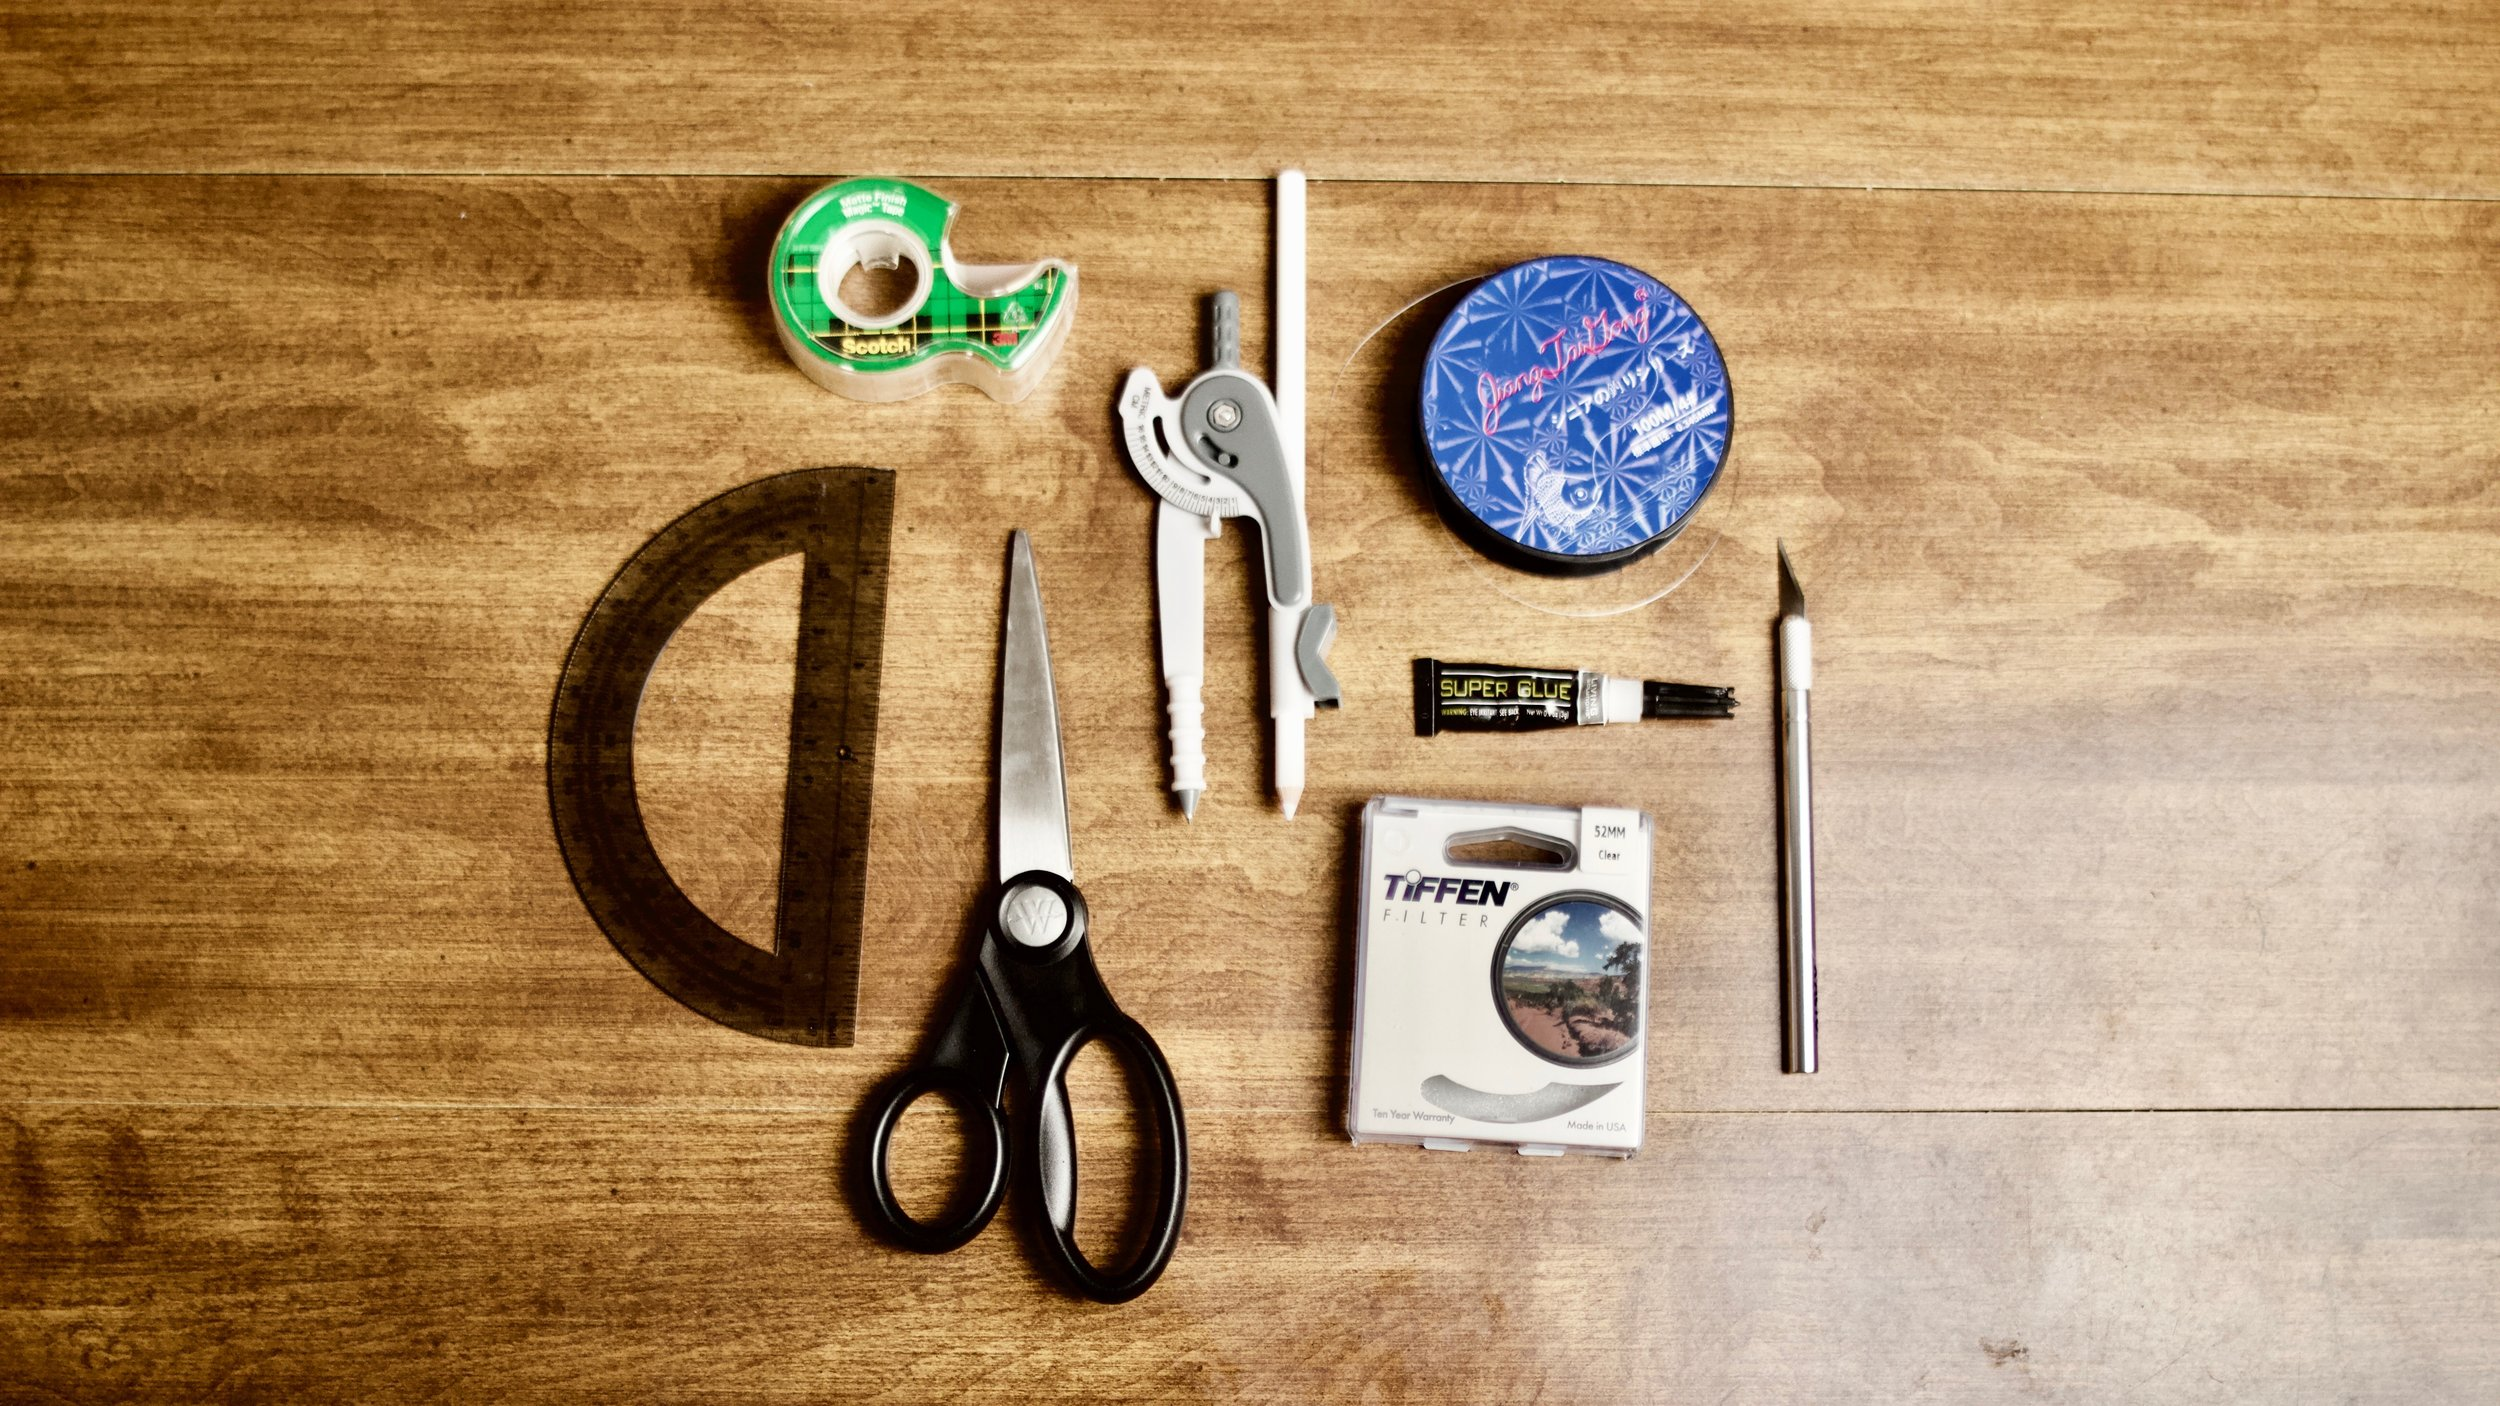 scissors-compass-protractor-tape-tiffen-lens-filter-fishing-line-superglue-xacto-naples-florida-swfl-filmmaking-film-diy